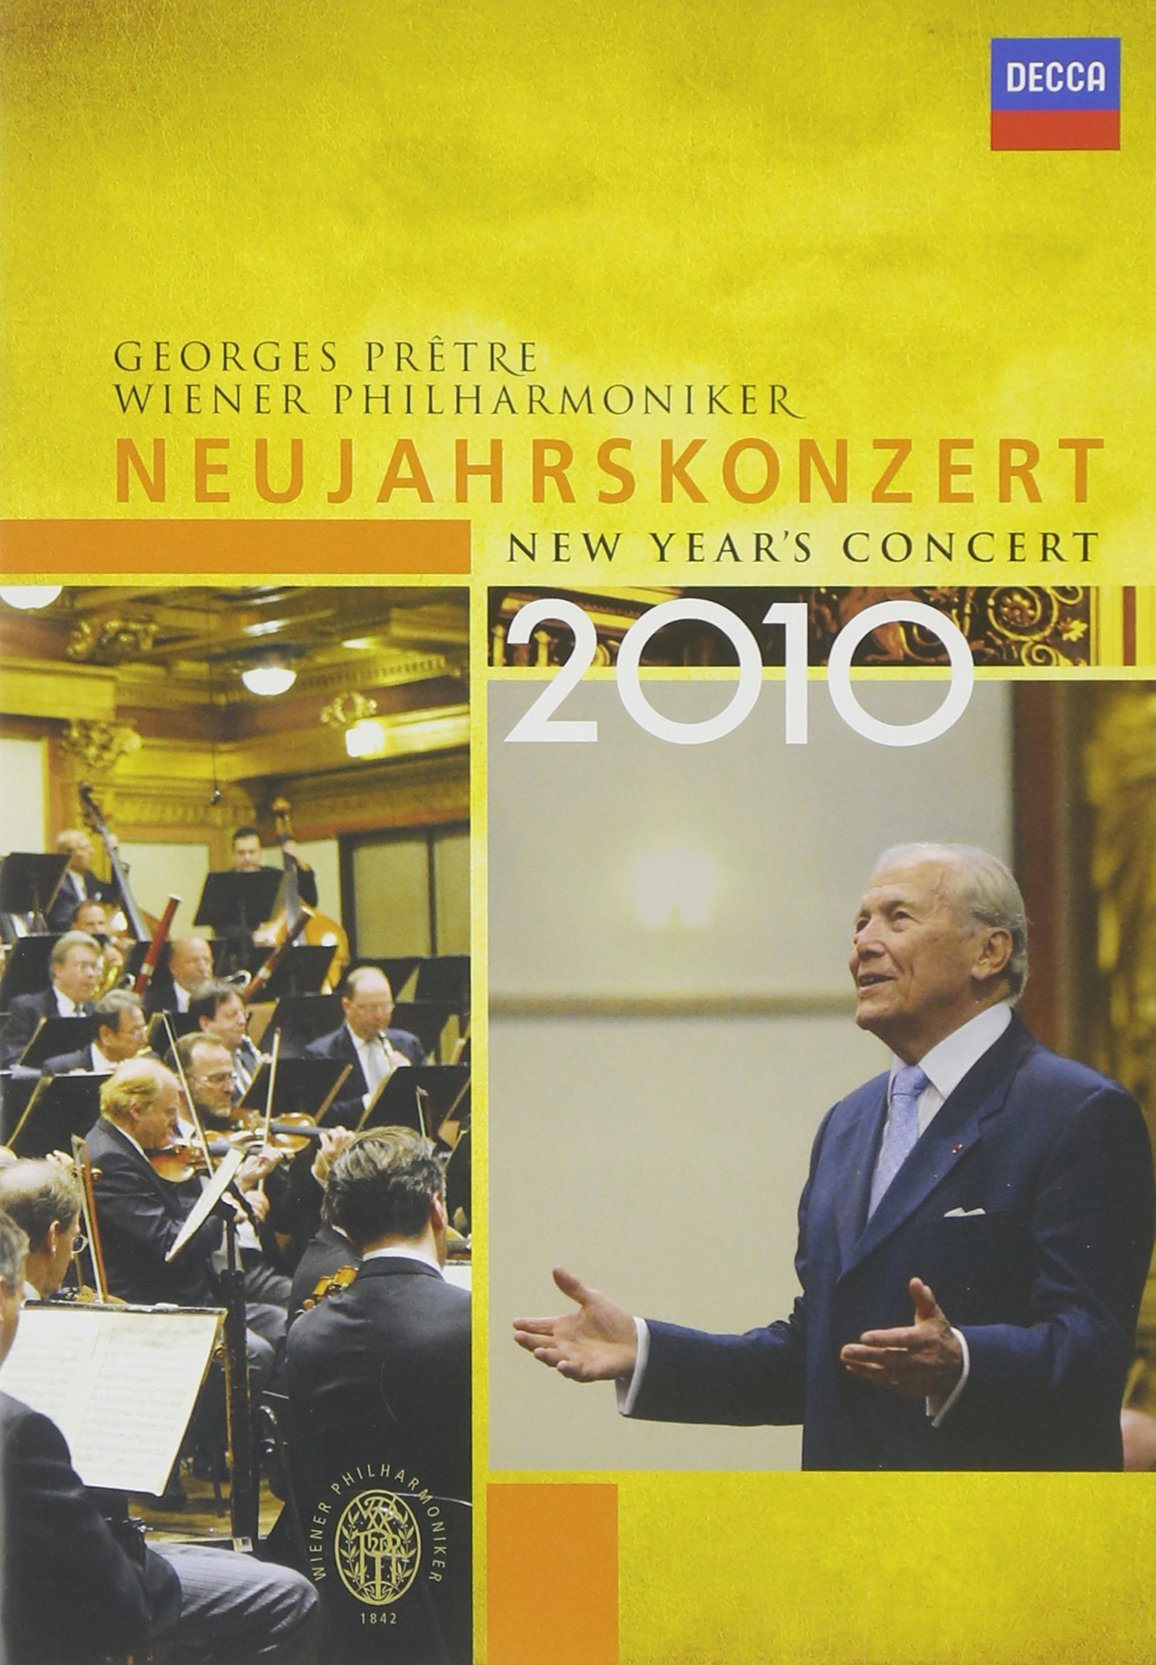 DVD : Georges Pretre - Vienna Philharmonic Orchestra - New Year's Concert 2010 (NTSC Format)